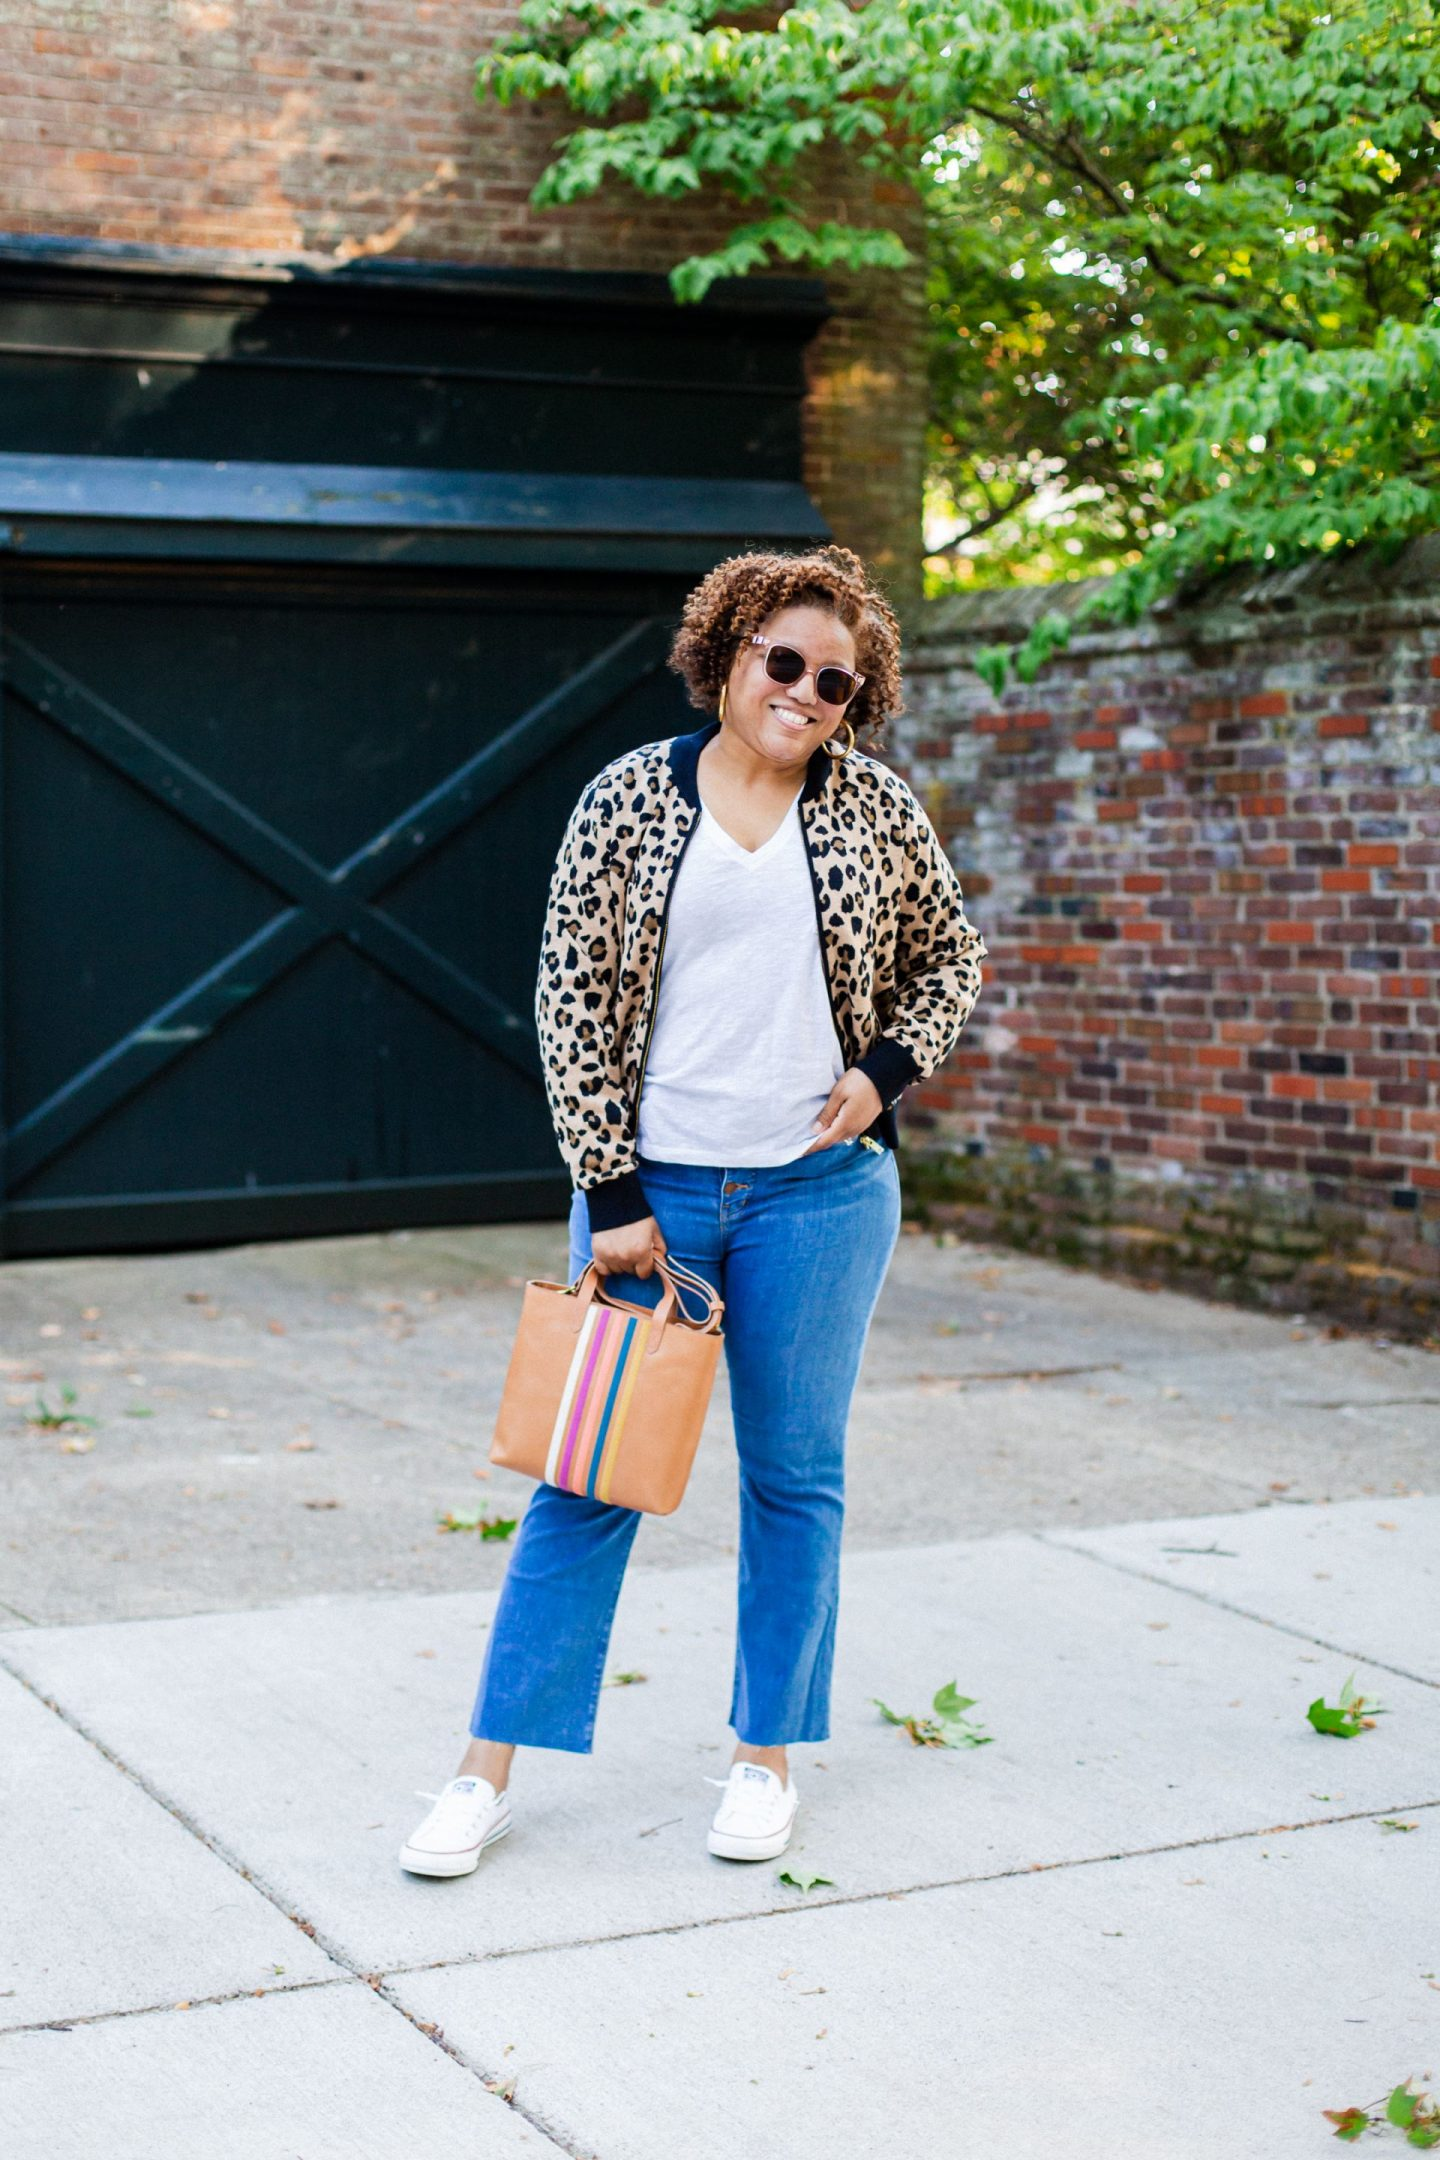 Nordstrom Favorites featured by top KW fashion blogger, Really Rynetta: image of a woman wearing a leopard bomber sweater and Madewell Cali High Waist Demi Boot Jeans | Nordstrom Fashion by popular Kentucky fashion blog, Really Rynetta: image of a woman standing outside and wearing a Nordstrom Leopard Bomber Sweater Jacket J.CREW, Nordstrom Cali High Waist Demi Boot Jeans MADEWELL, Nordstrom Whisper Cotton V-Neck Pocket Tee MADEWELL, Nordstrom Chuck Taylor® Shoreline Sneaker CONVERSE, and Nordstrom Oversized Hoop Earrings MADEWELL.